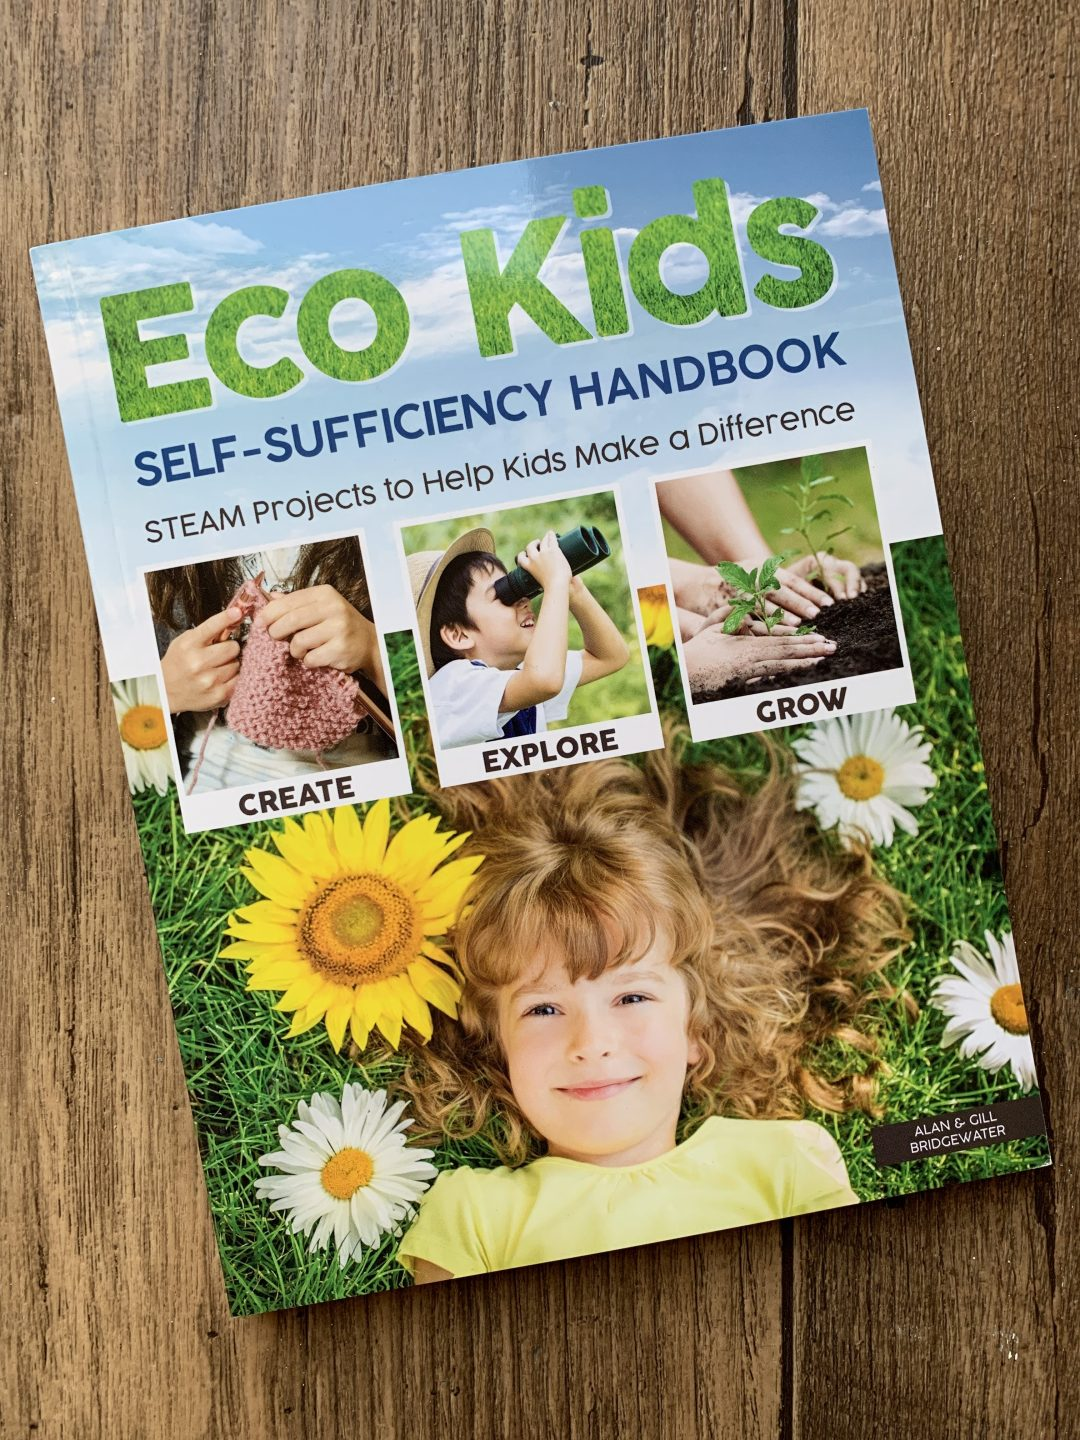 Eco Kids Self-Sufficiency Handbook review